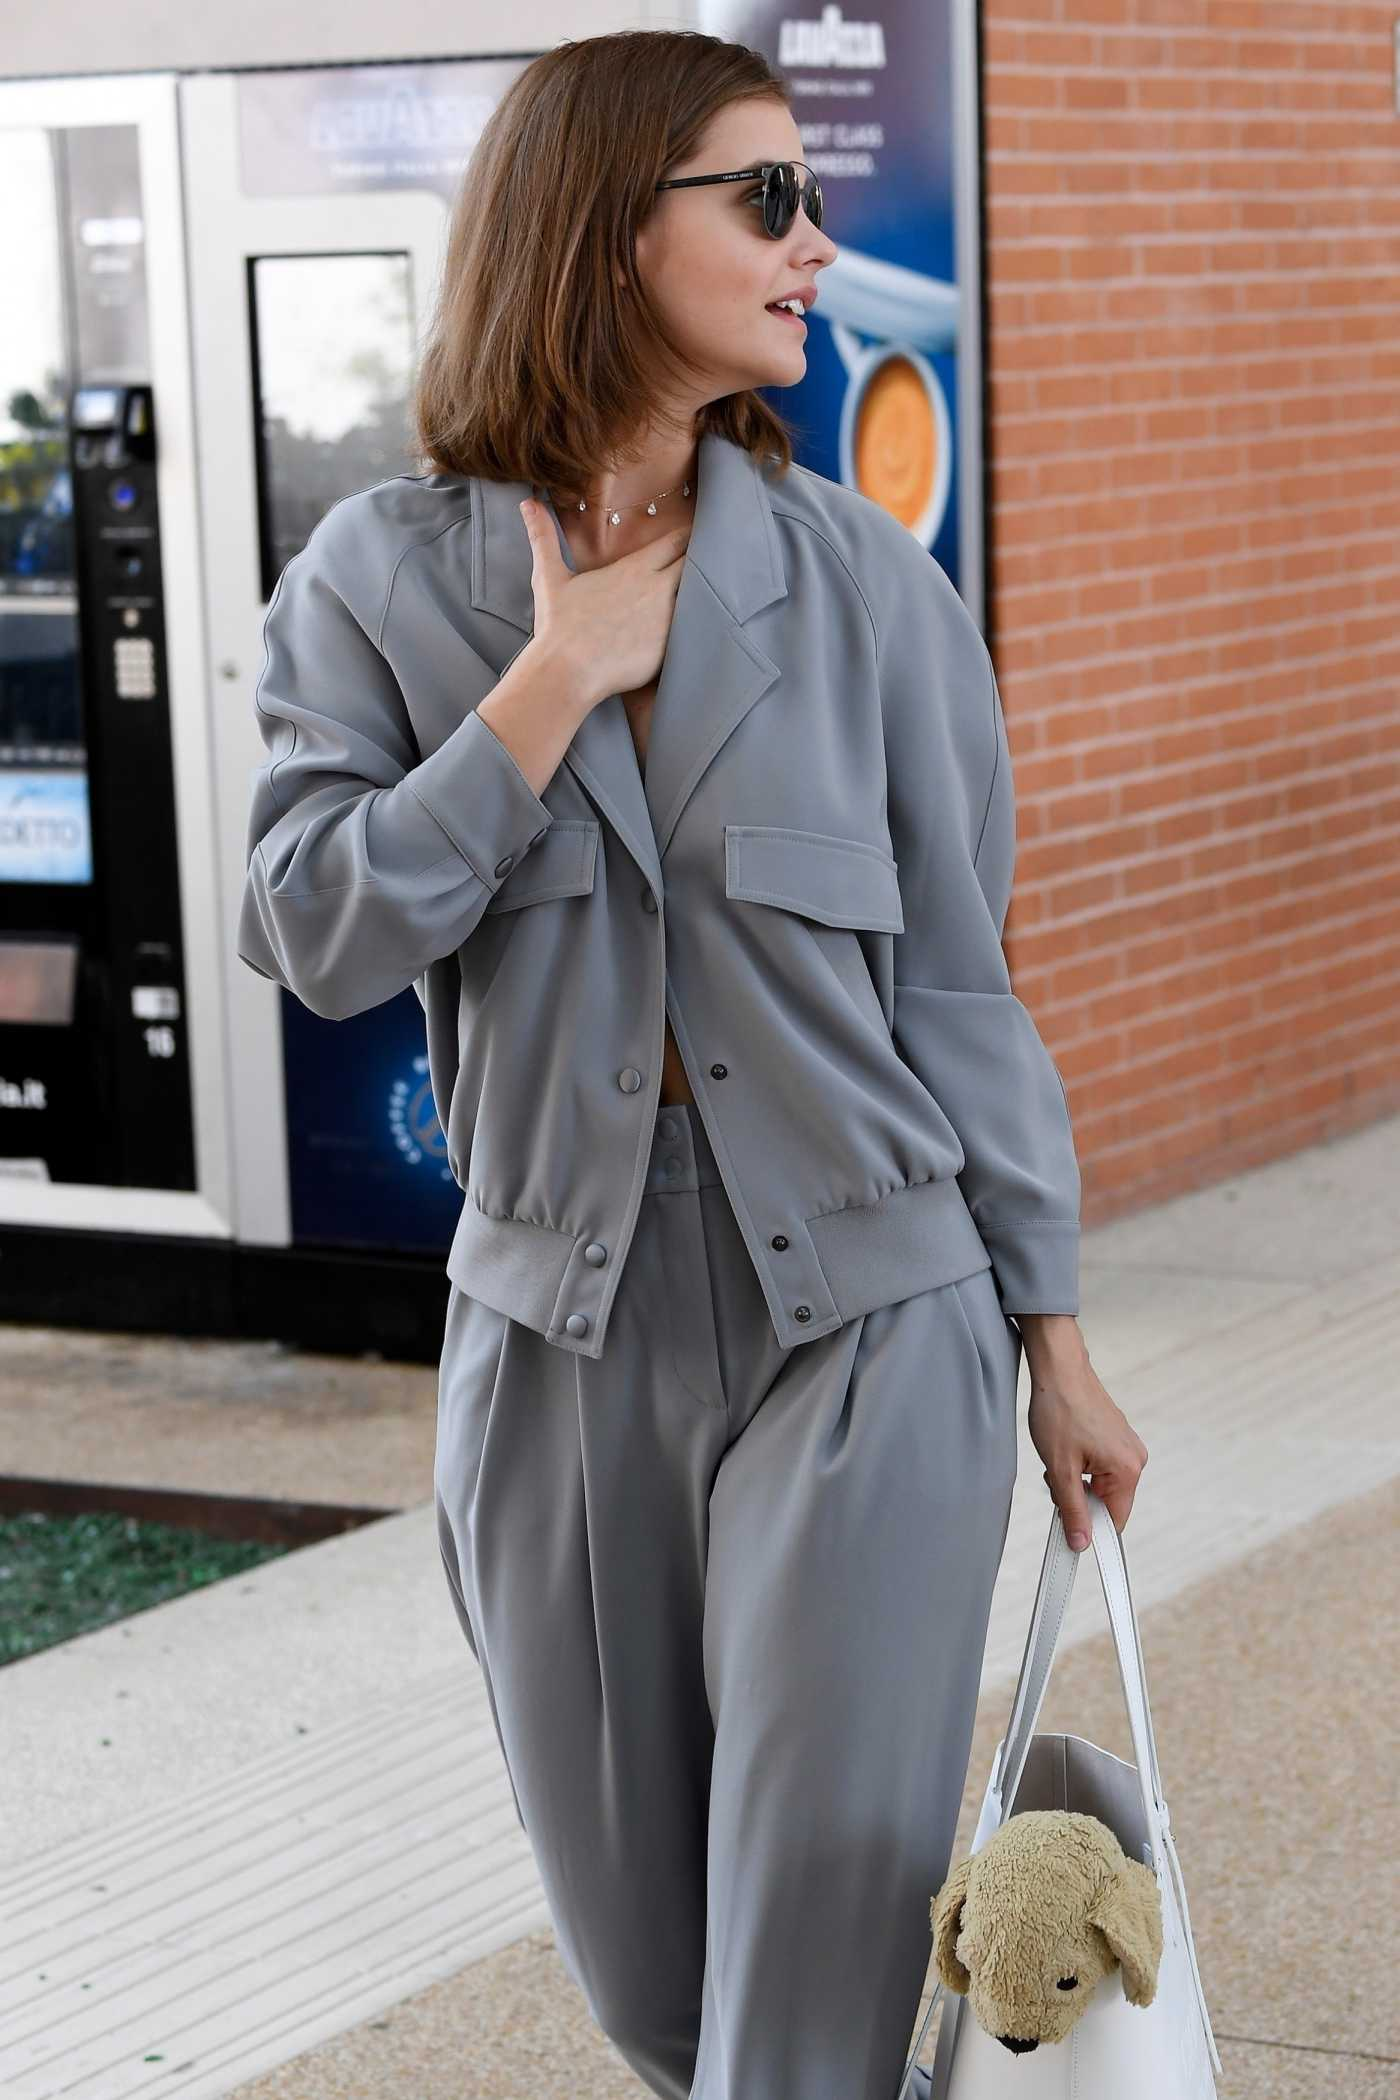 Barbara Palvin in a Gray Suit Arrives at the 76th Venice Film Festival in Italy 08/28/2019